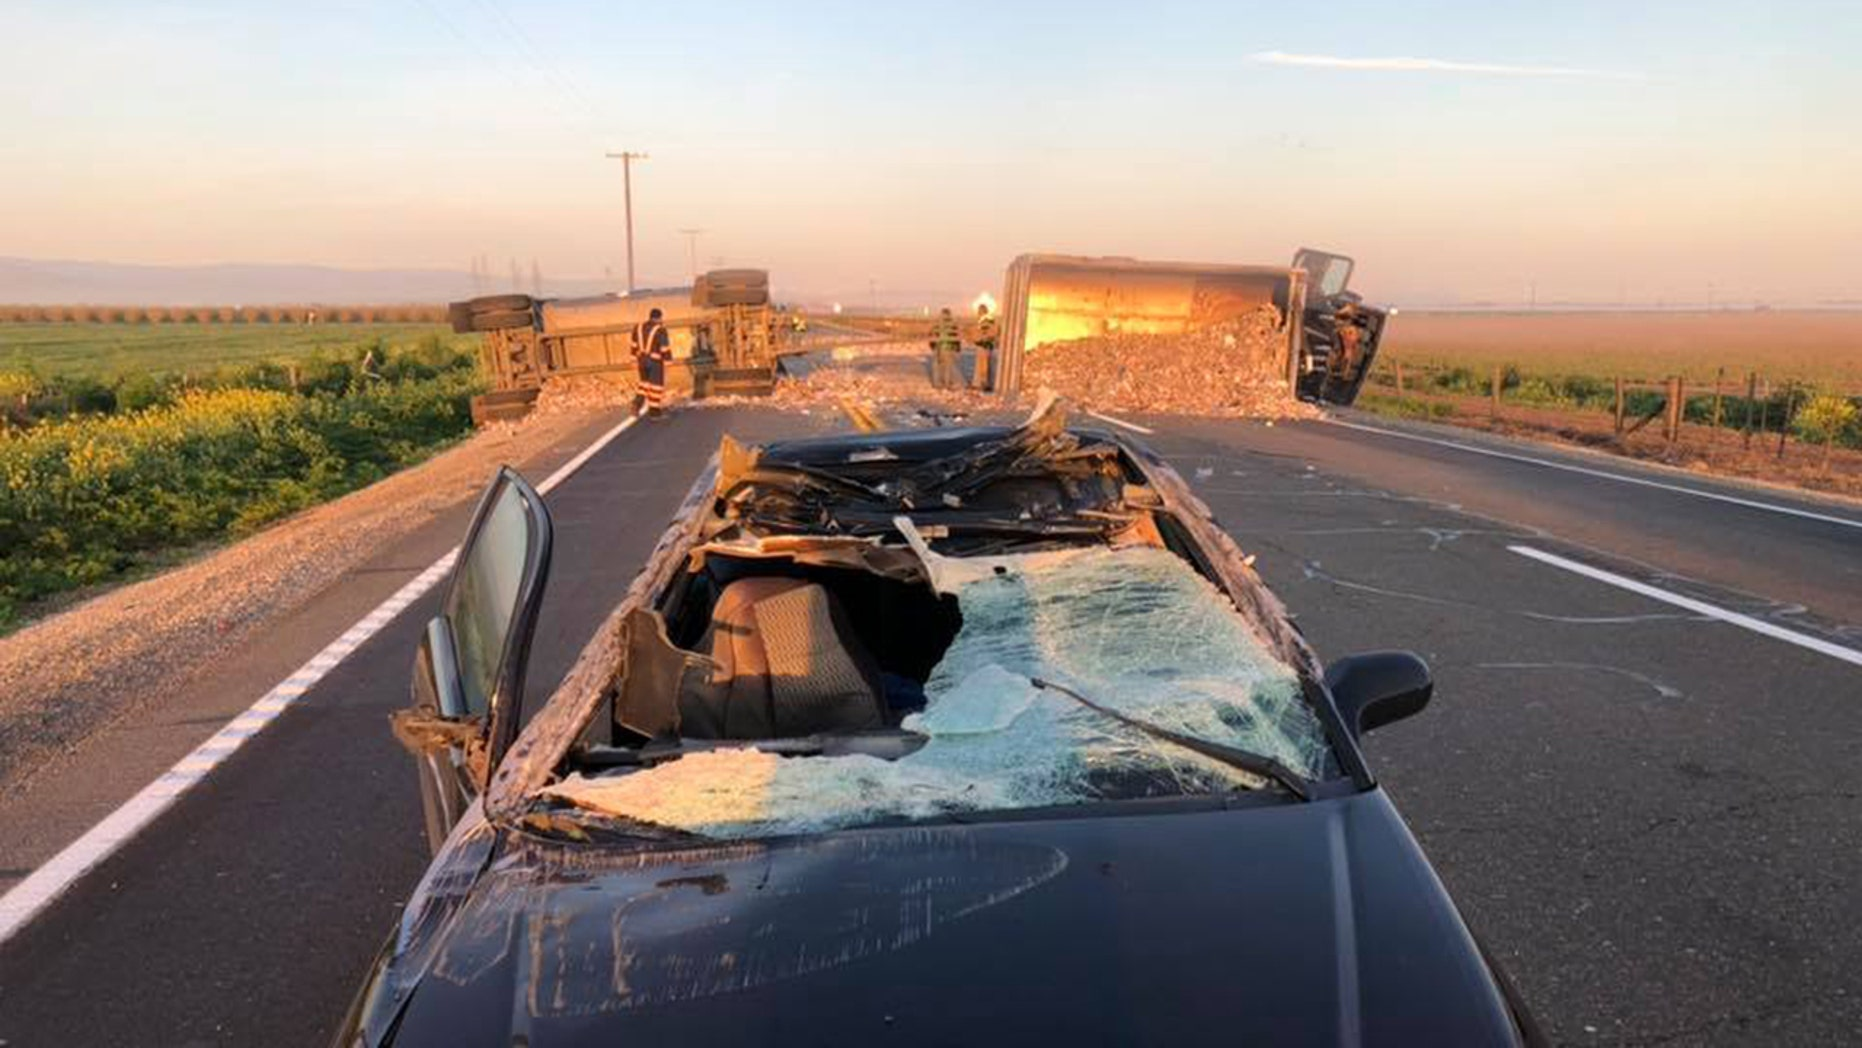 """A Honda being driven on a California roadway """"limboed"""" between a pair of overturned trailers, authorities said Friday, causing significant damage to the car including a shattered front window."""